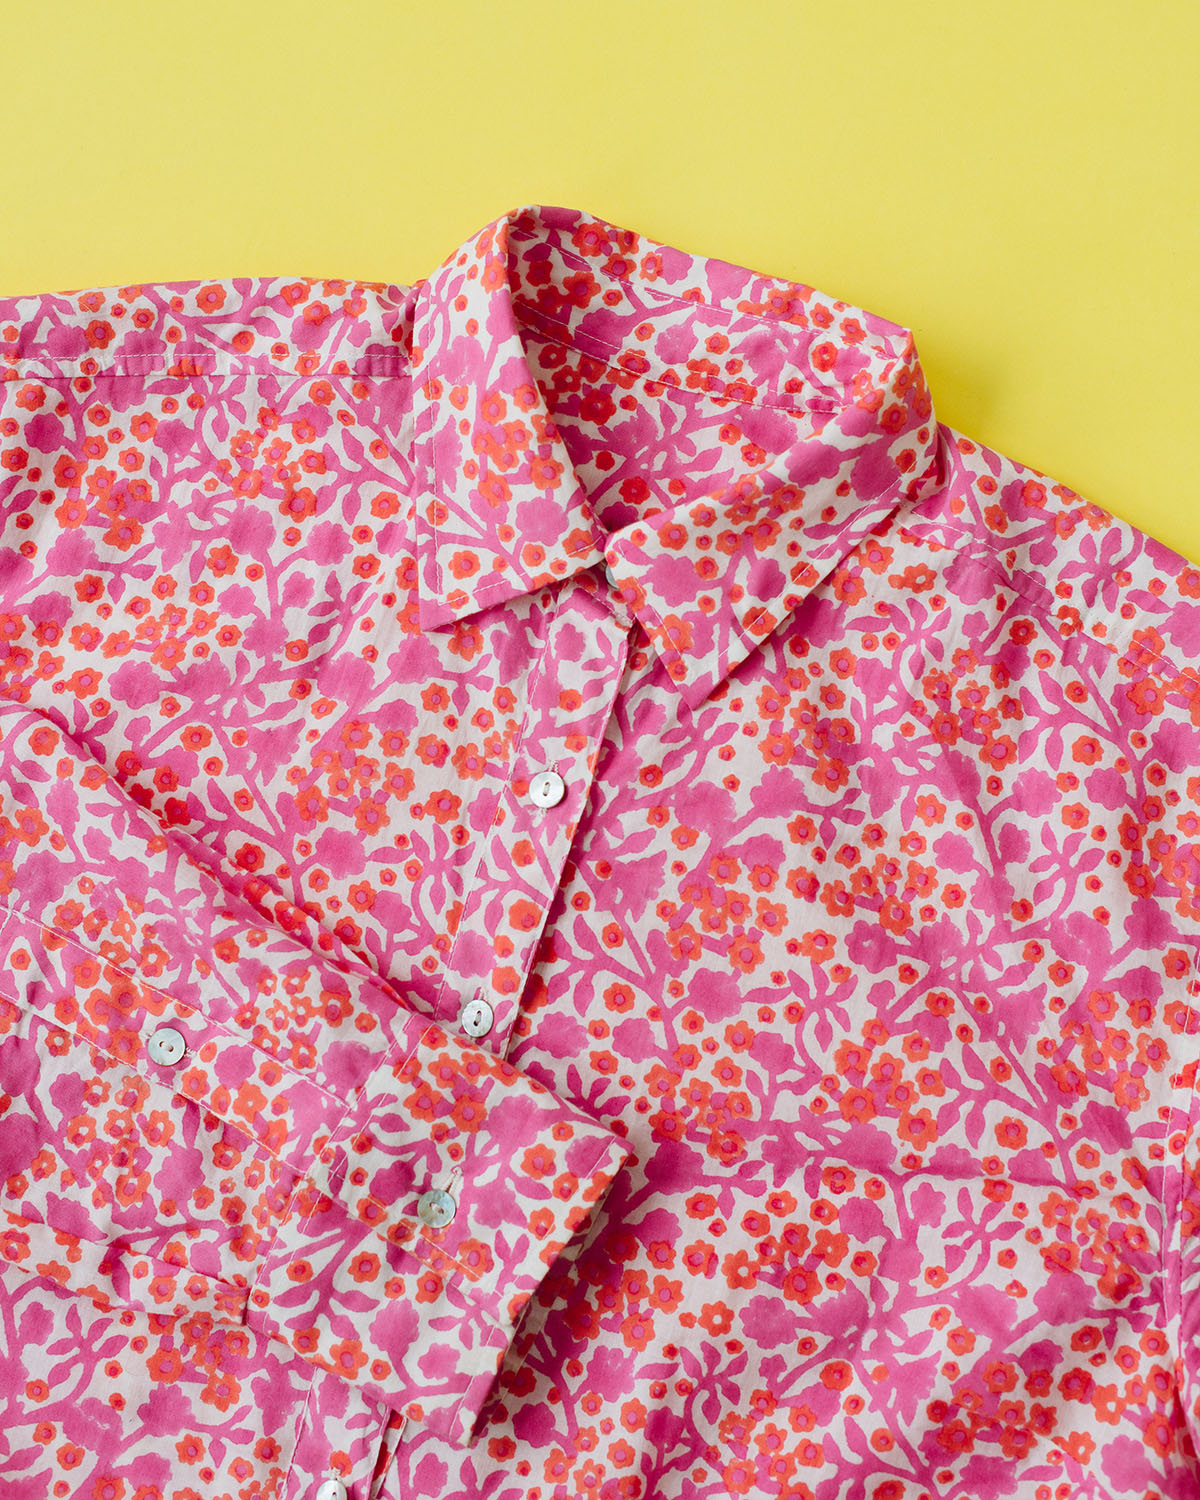 sneak peek at the new sunny cotton voile button down in spring melody print! ♥️💕♥️💕🧡💕🧡💕‼️